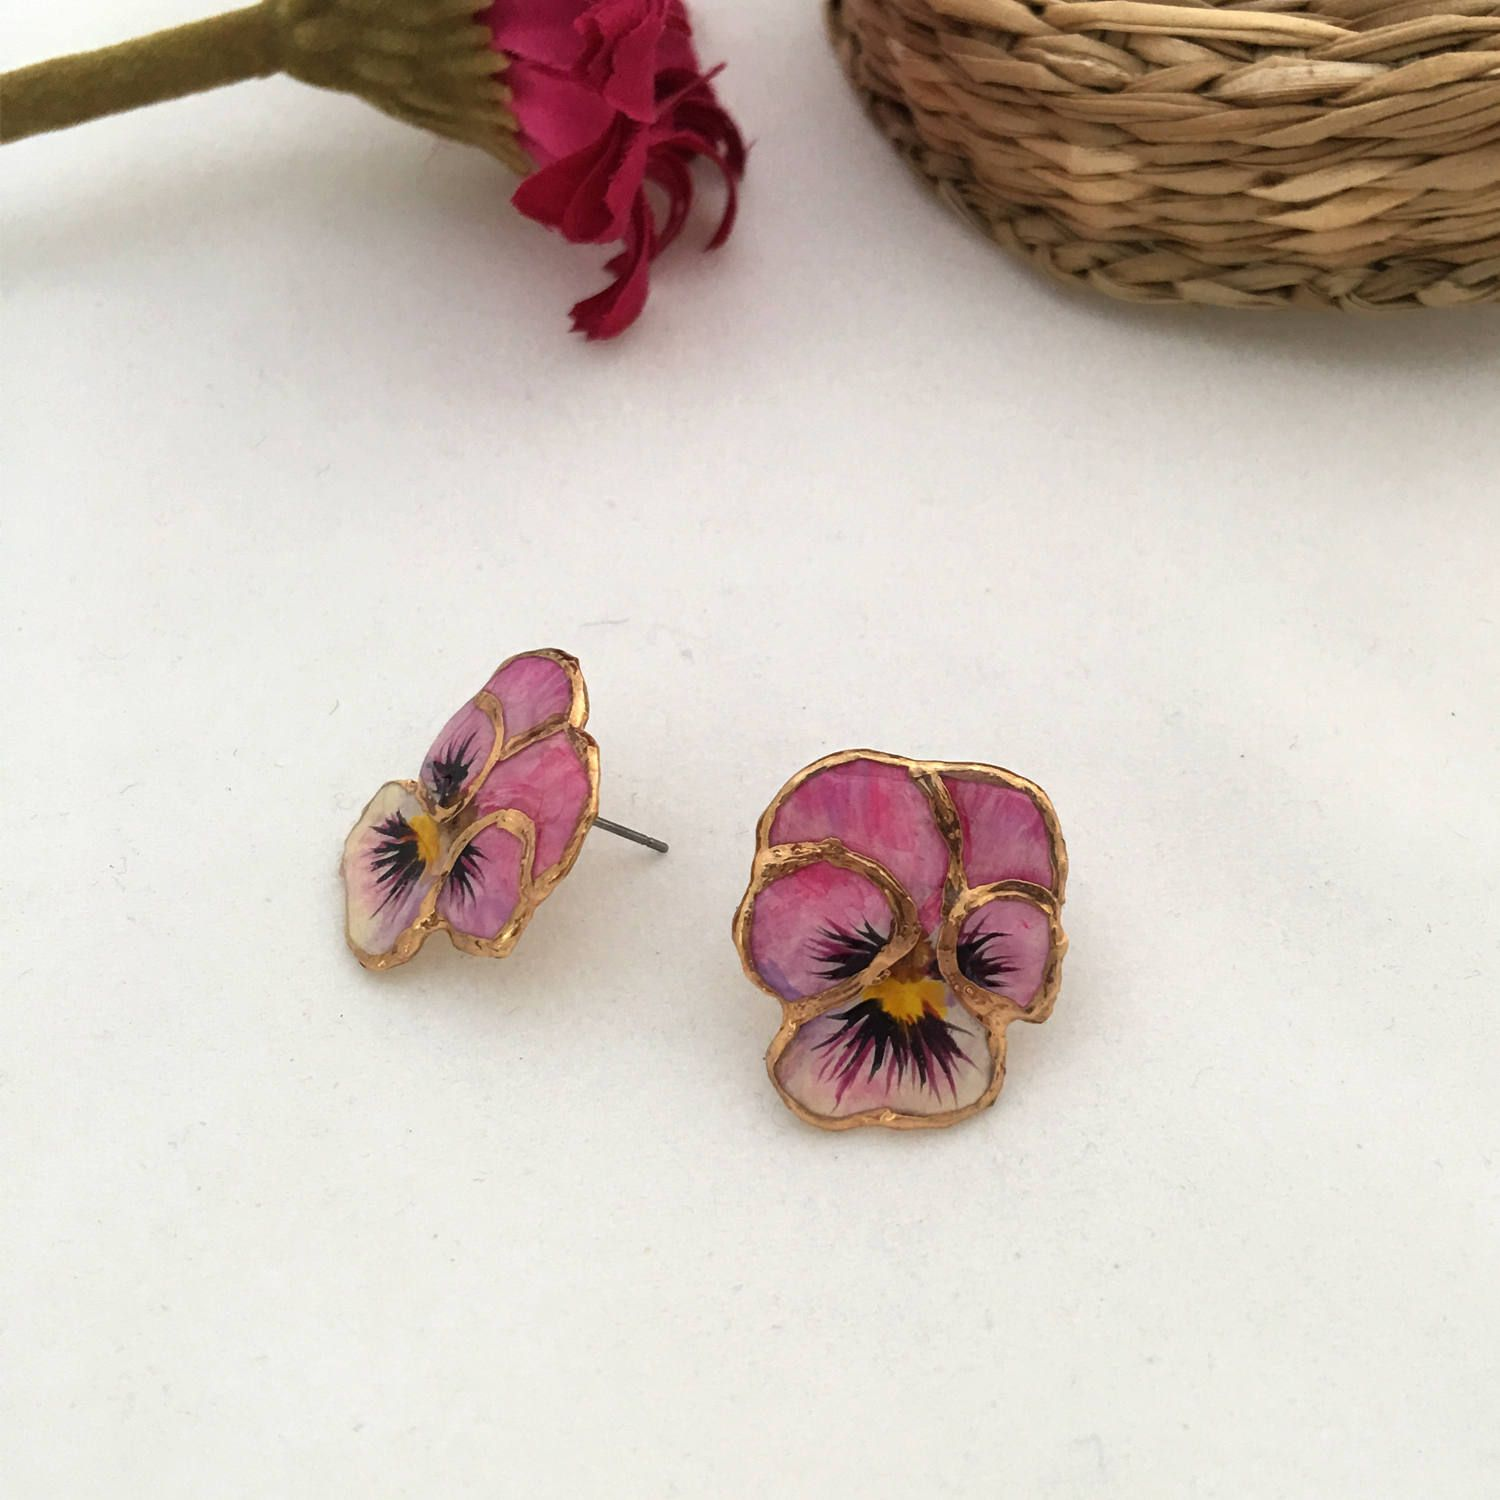 Present For Her Forget Me Not Earrings Pansy Earrings Pansy Flower Earrings Pink Pansy Earring Red Flower Earrings Pink Stud Earrings Flower Earrings Studs